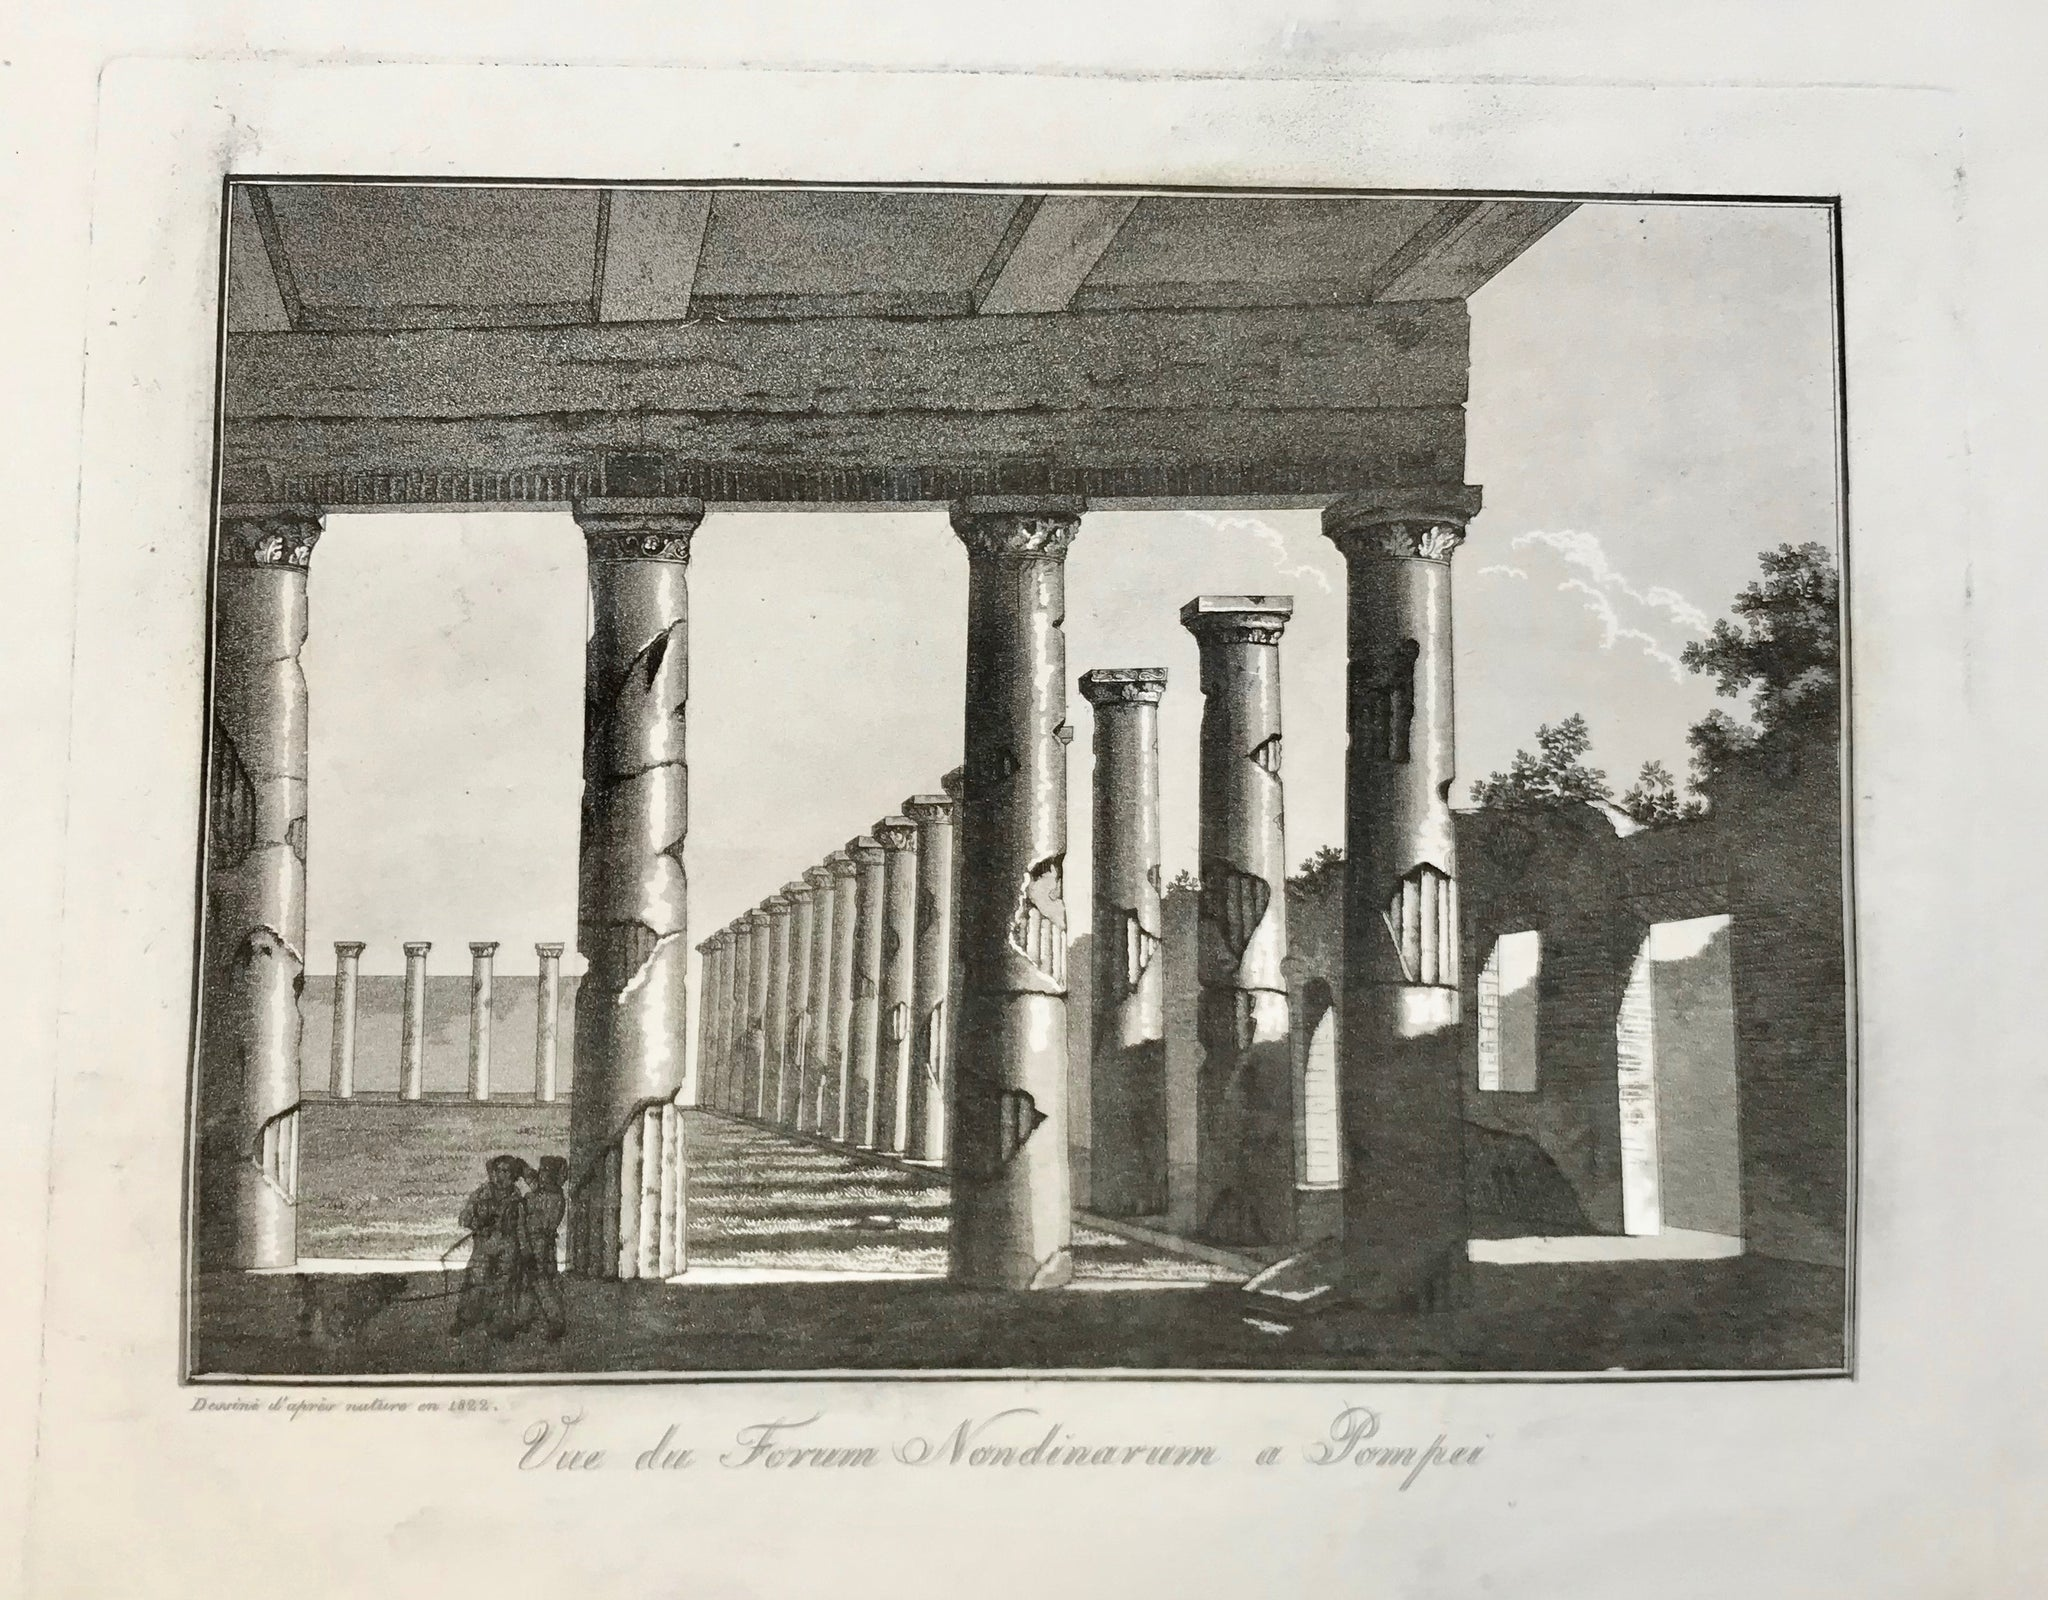 """Vue du Forum Nondinarum a Pompeii""  Image: 20.5 x 28 cm ( 8 x 11 "")   Aquatints engraved by Paul Fumagalli from 1821-1825  These prints with their velvety aquatint appearance were made to delight our hearts."